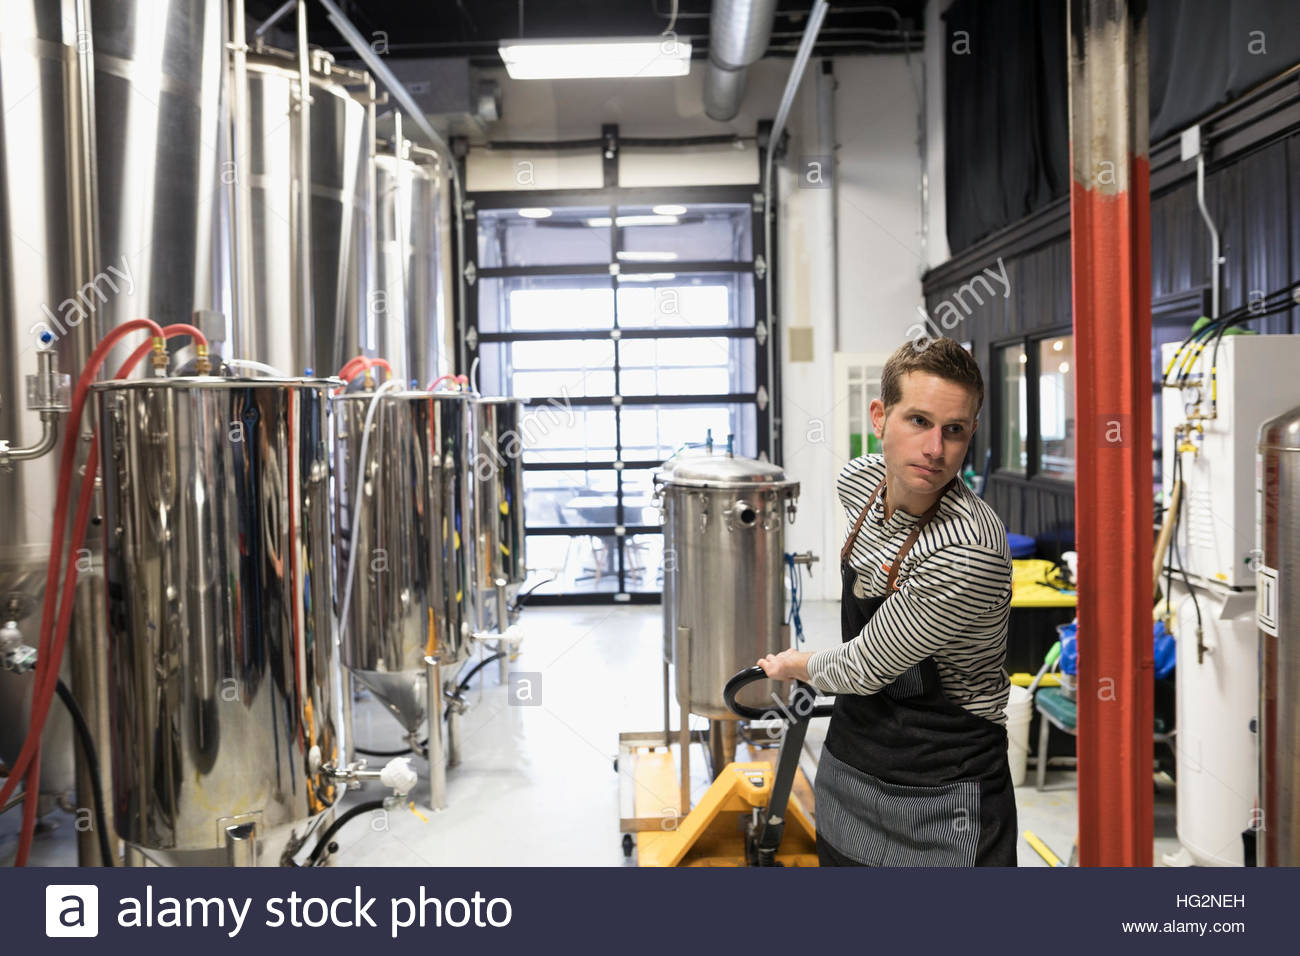 Male brewer pulling beer vat on pallet truck in brewery - Stock Image